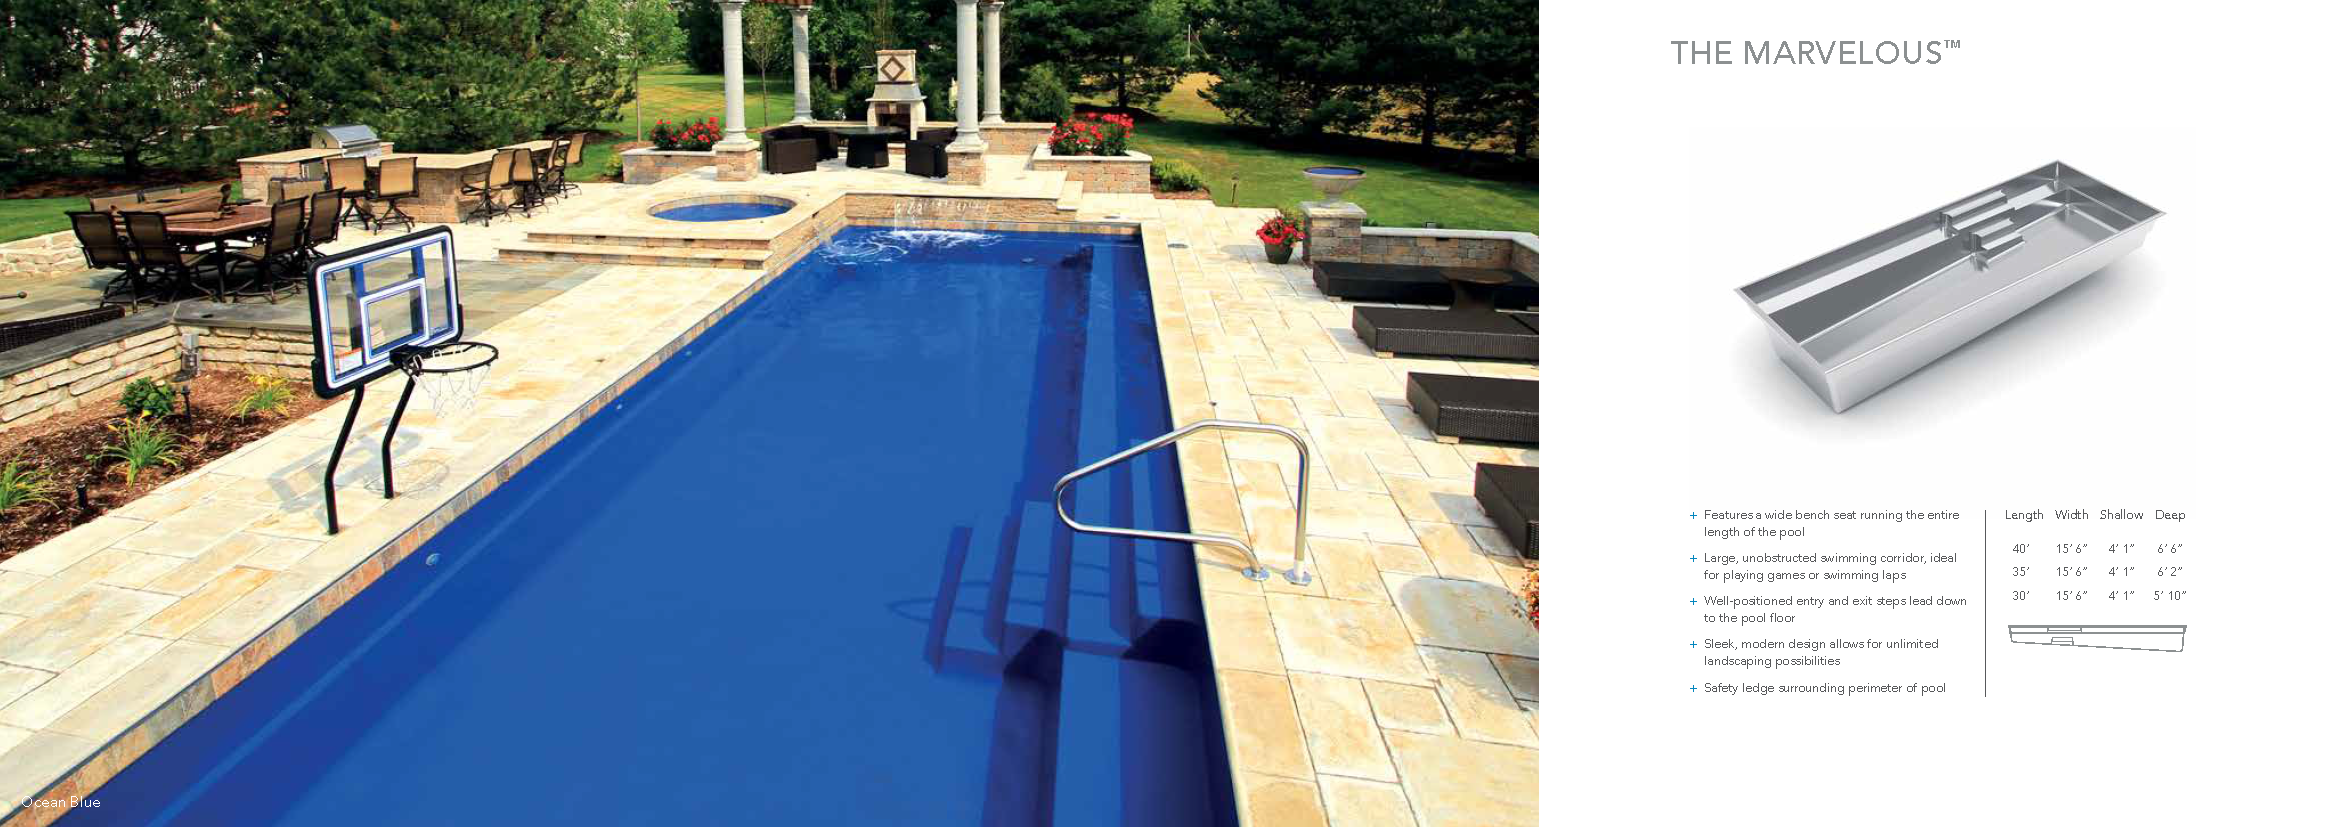 Imagine Pools Consumer Brochure 2018-1001_Page_13